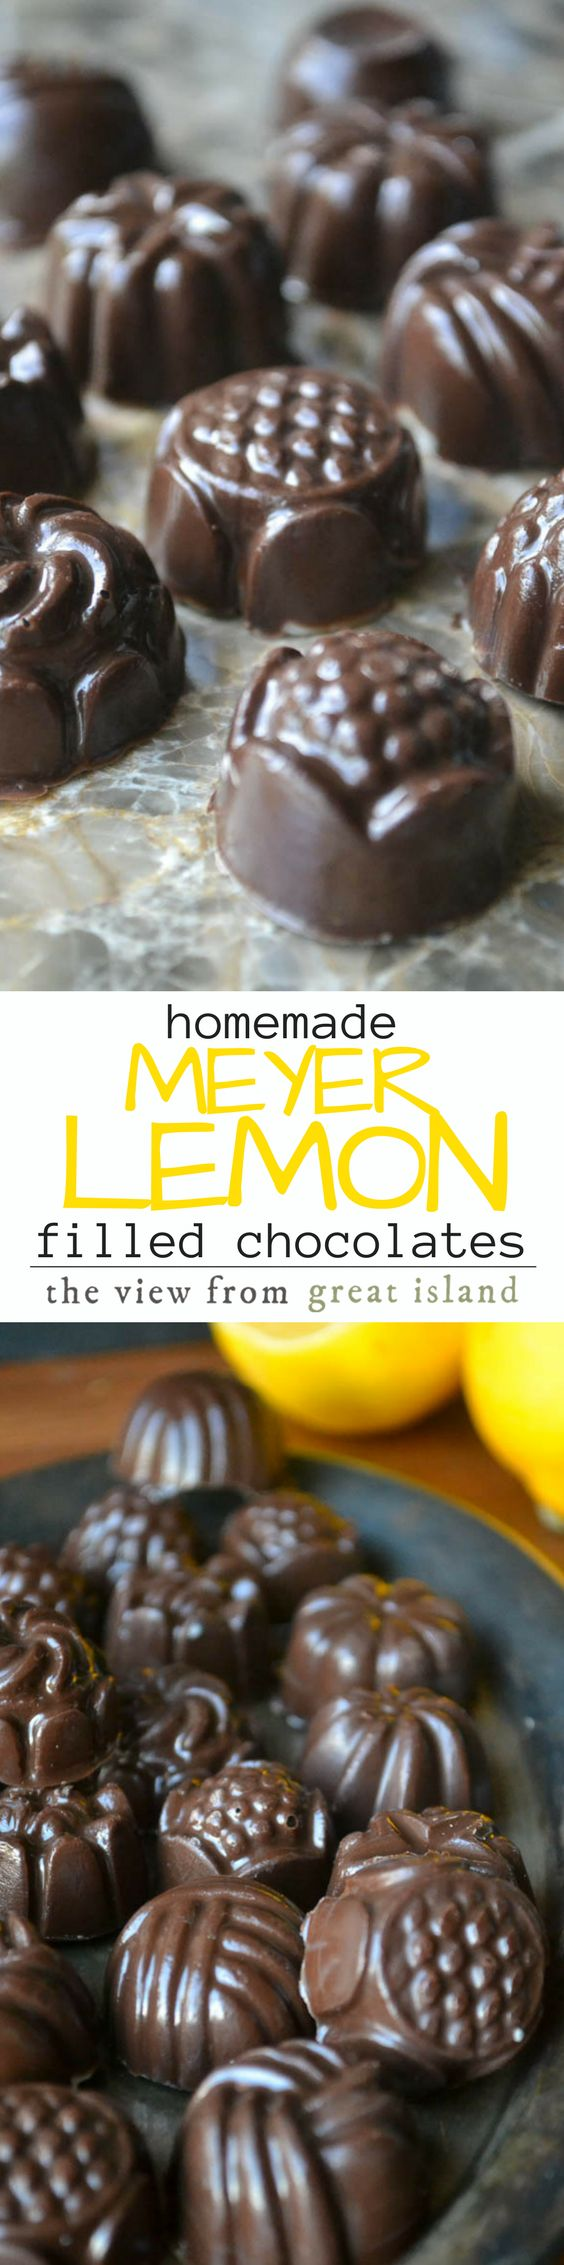 Believe it or not these Meyer Lemon Filled Chocolates are super easy to make at home, and you can customize the chocolate and the filling in countless variations!   Valentine's Day   Mother's Day   Homemade candy   diy   Holiday food gifts